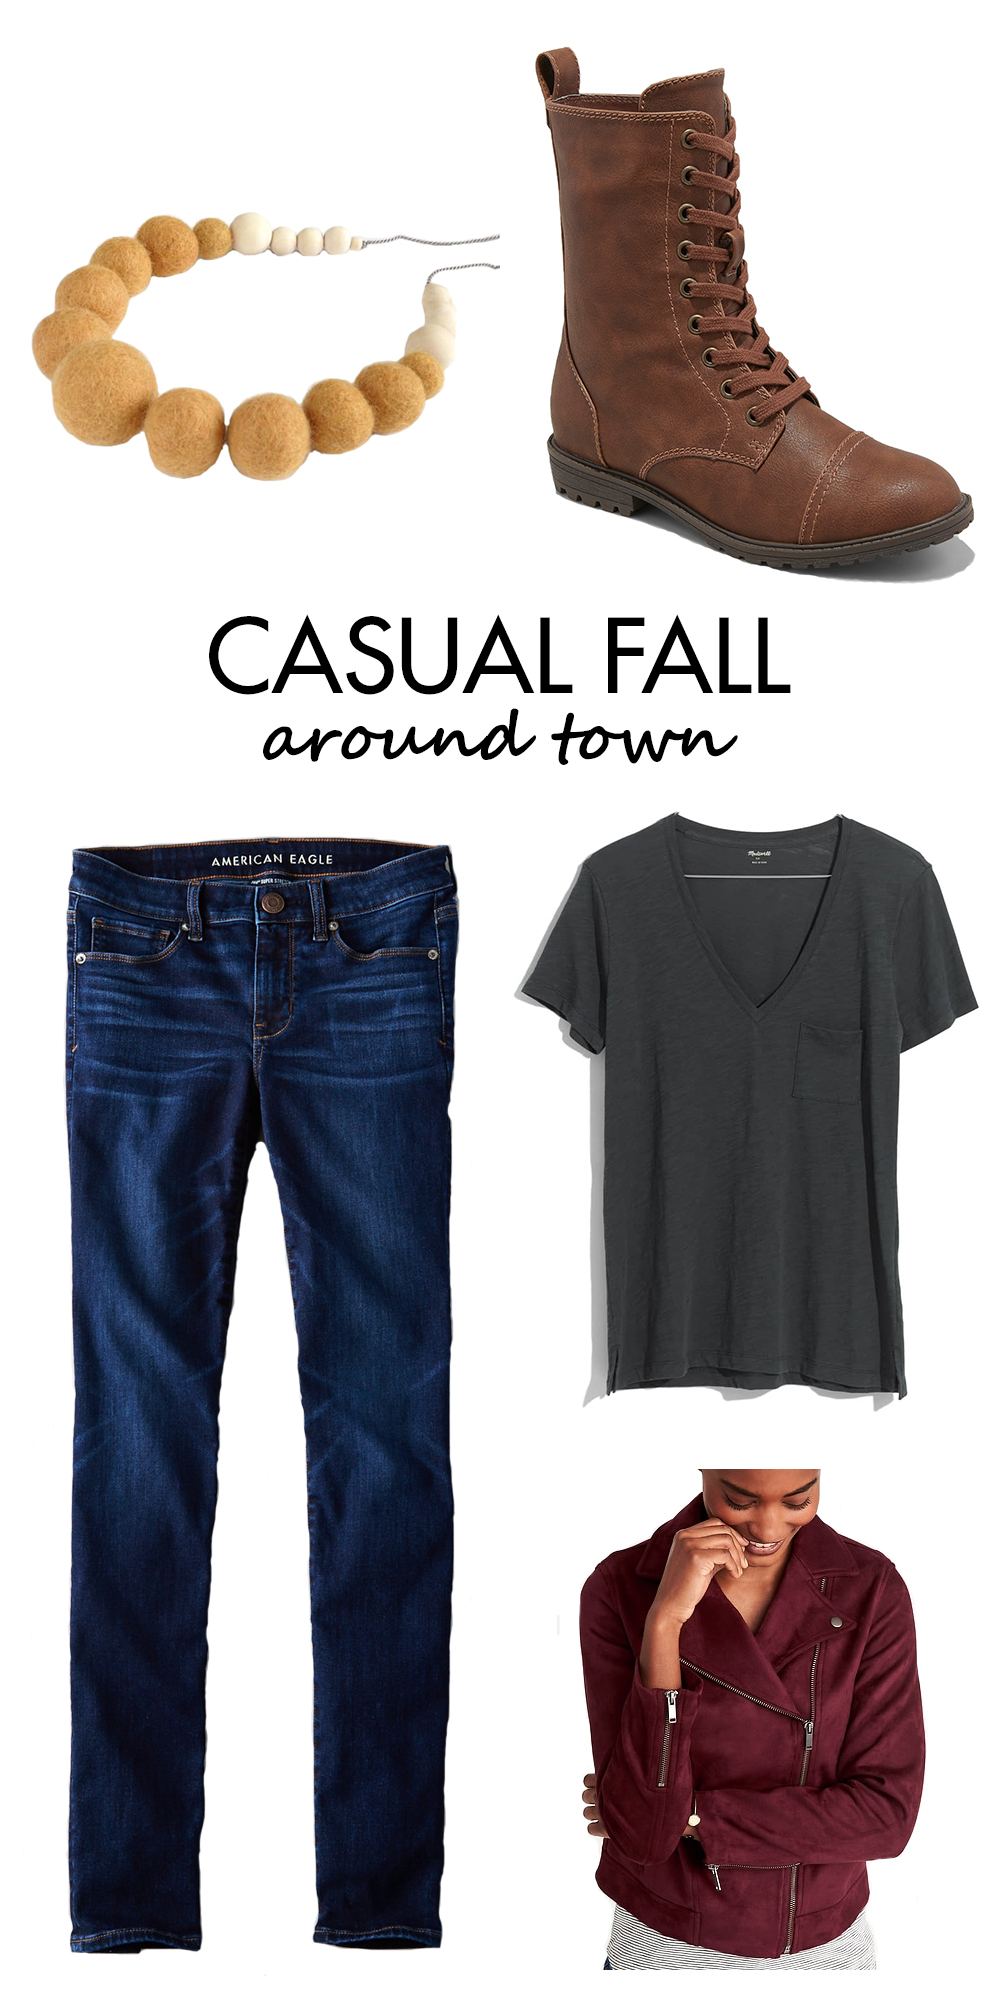 Casual Fall Outfits Inspiration - Around Town | https://www.roseclearfield.com